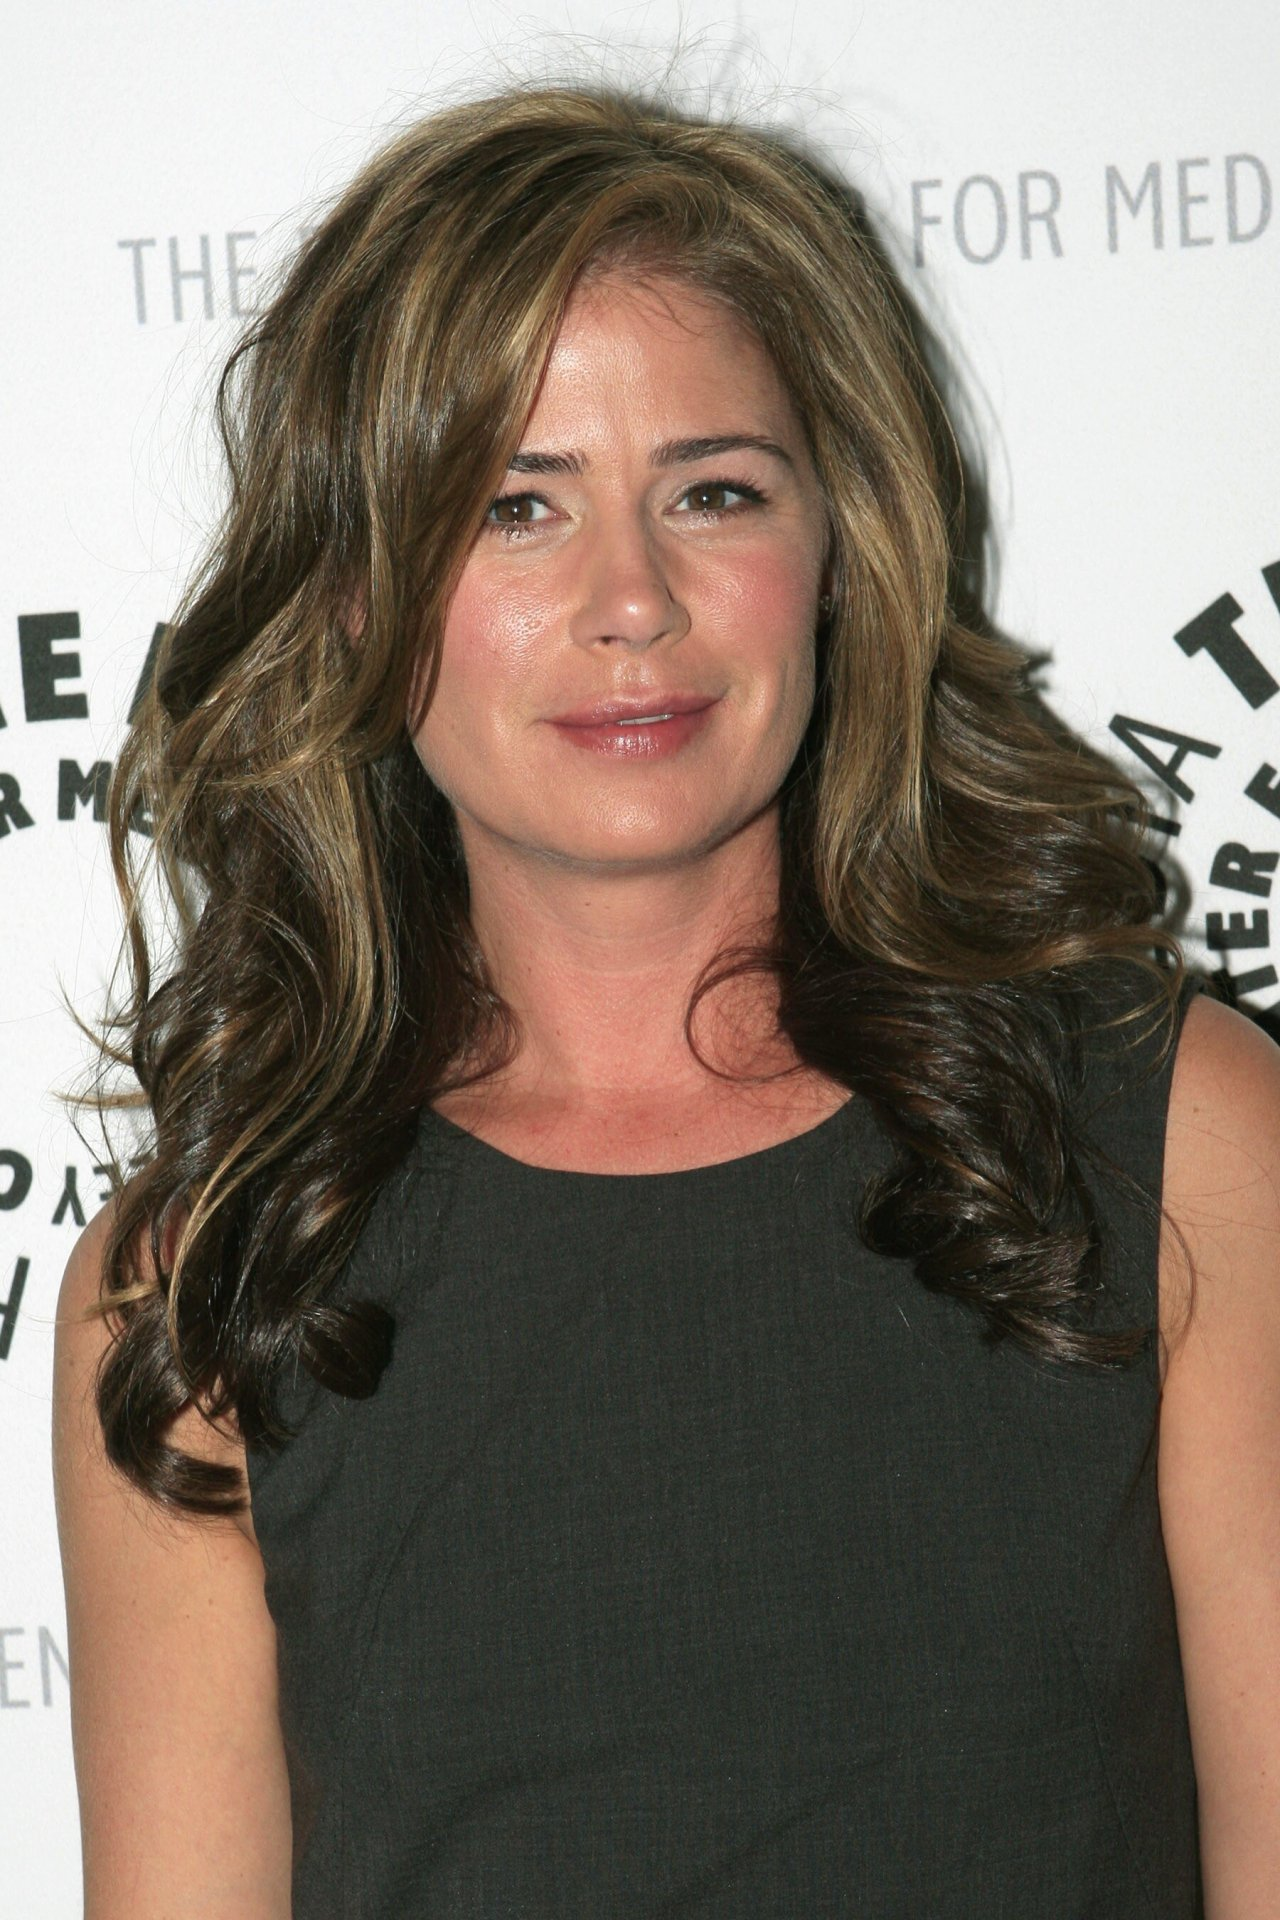 Maura Tierney website